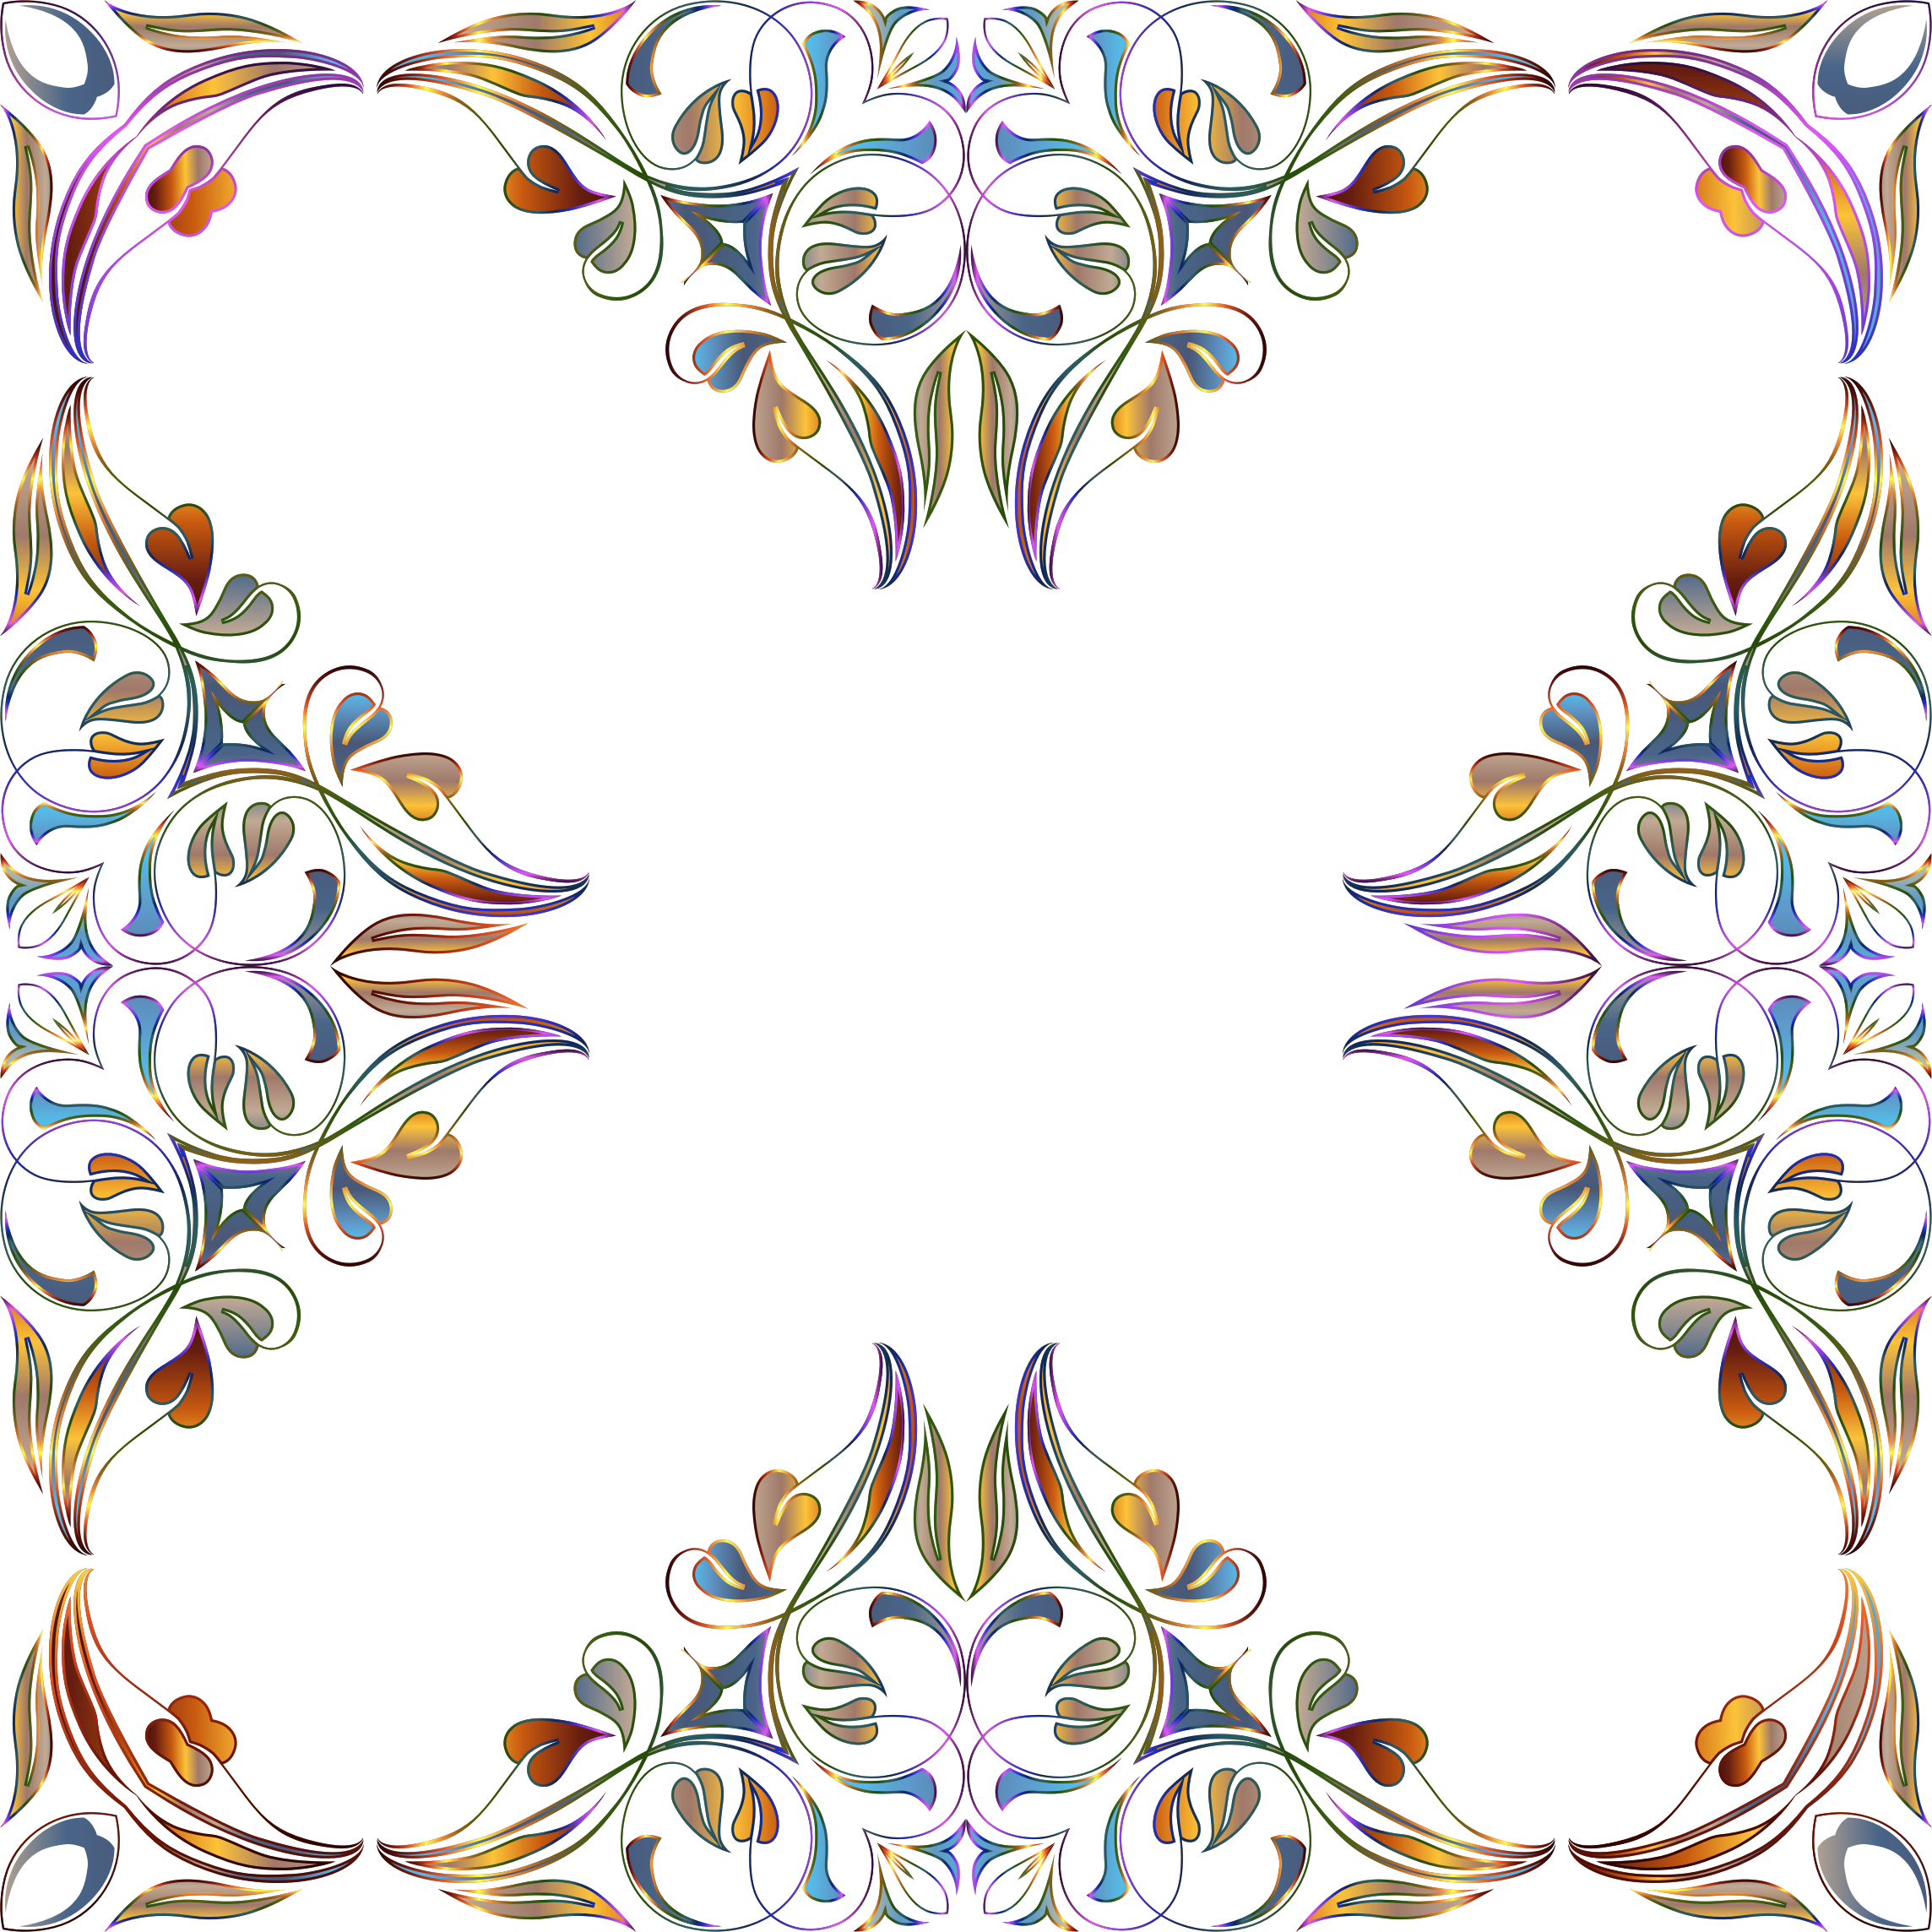 Floral Flourish Frame 28 by GDJ